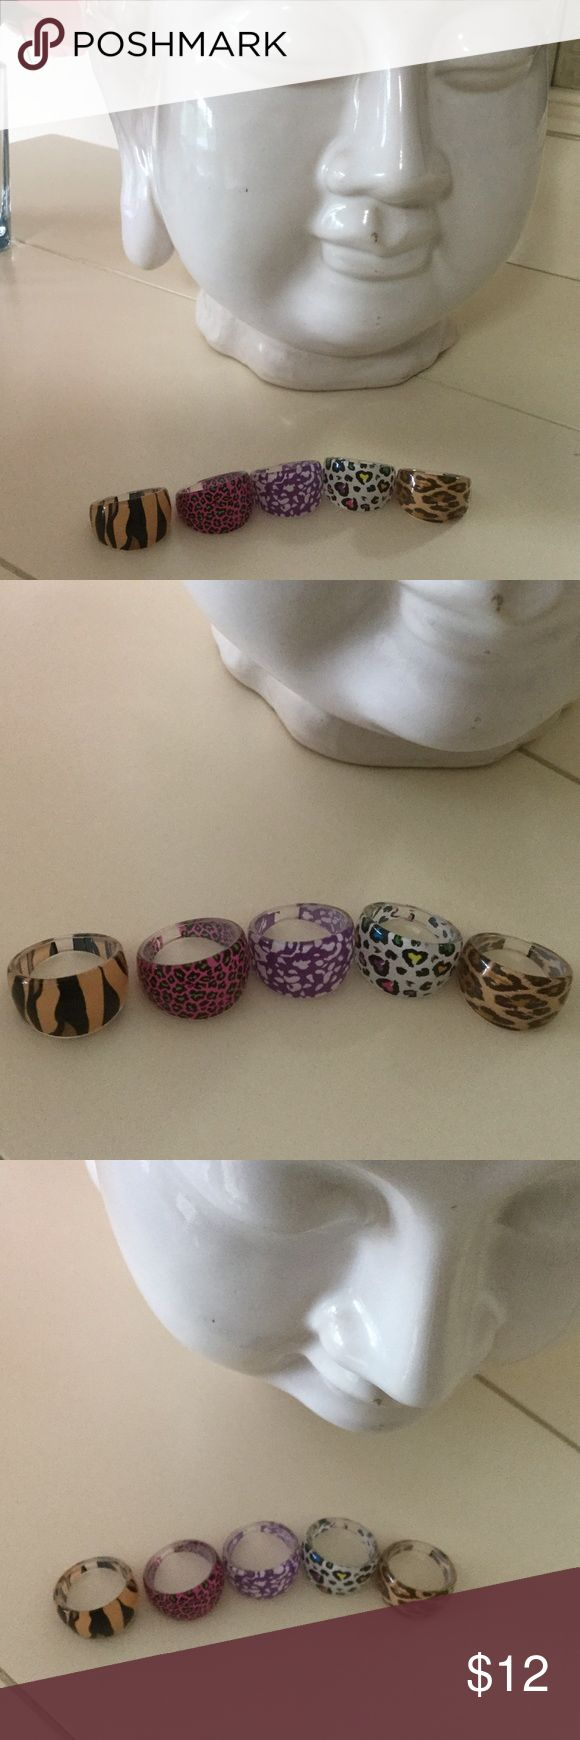 NWT five animal print acrylic rings A different animal print ring for any outfit. So fun to wear with summer and warm weather outfits. The rings are a size 7 Jewelry Rings